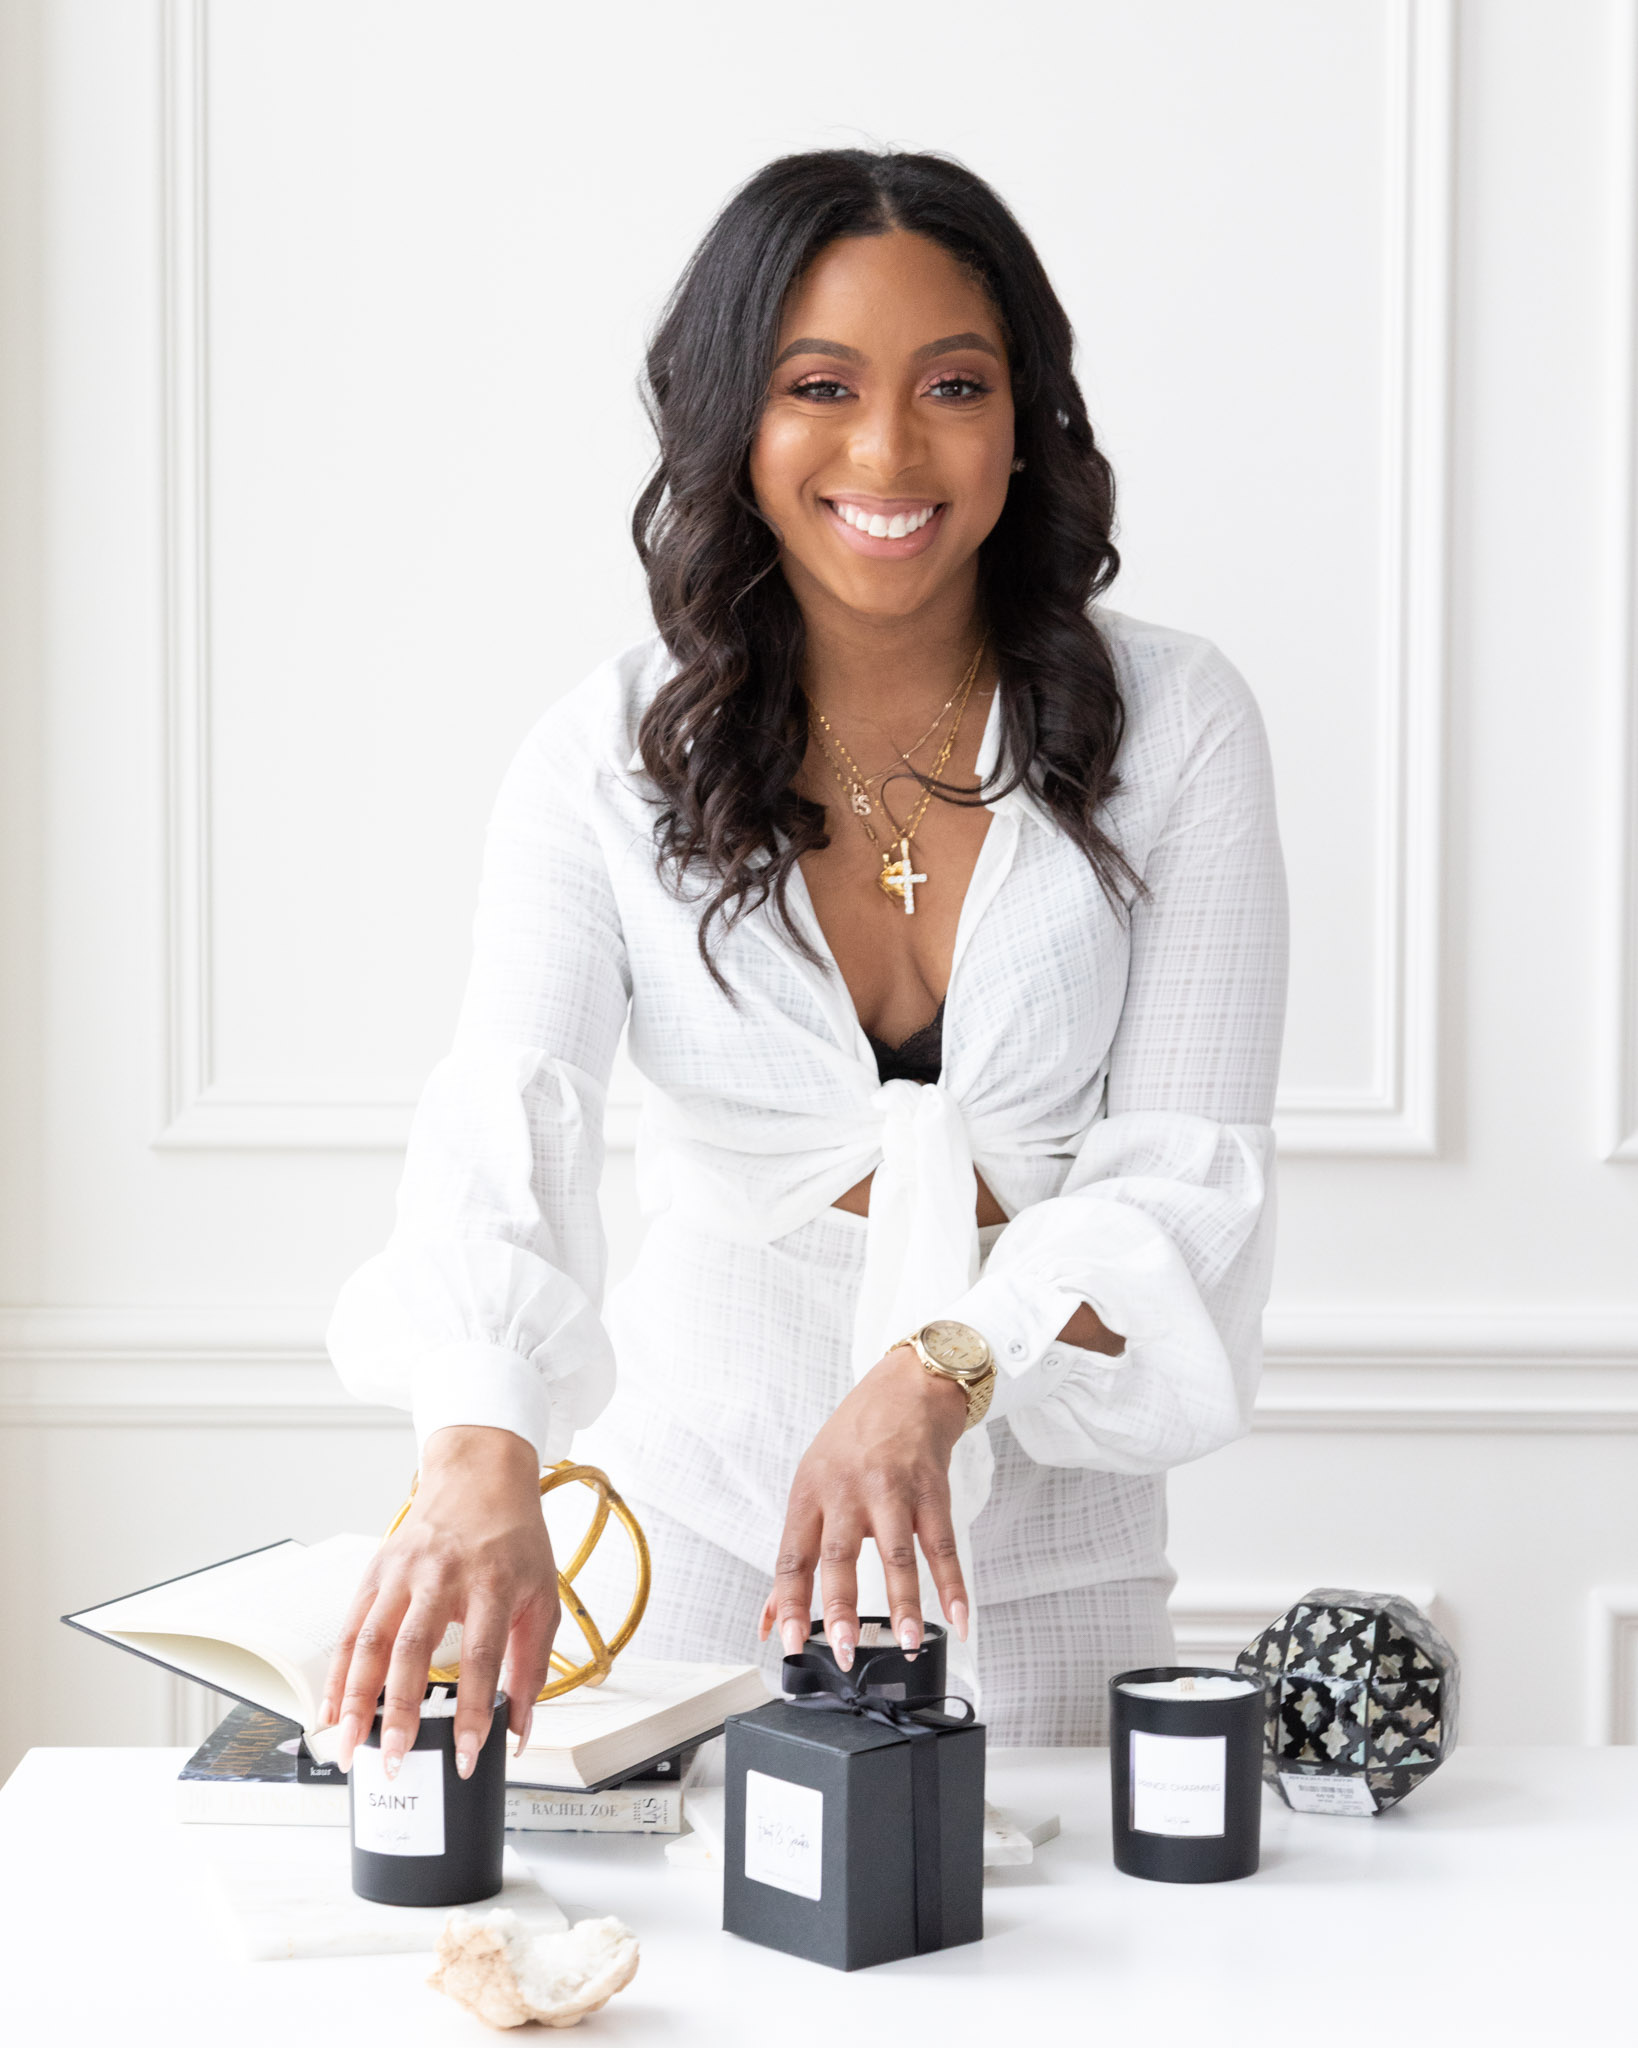 Makes Scents - Michigan Native Arielle Martin holds a true passion for clean fragrances. Since youth, Martin always believed that if it did not smell good, it was not clean. However, when developing her brand, she wanted to ensure that even if it smelled good, it was still clean. She tested various blends for months before curating the perfect blend that was birthed into Front & Scenter. Her love for Real Estate, the city, and fine fragrances come together to transform the city, one sensory experience at a time.